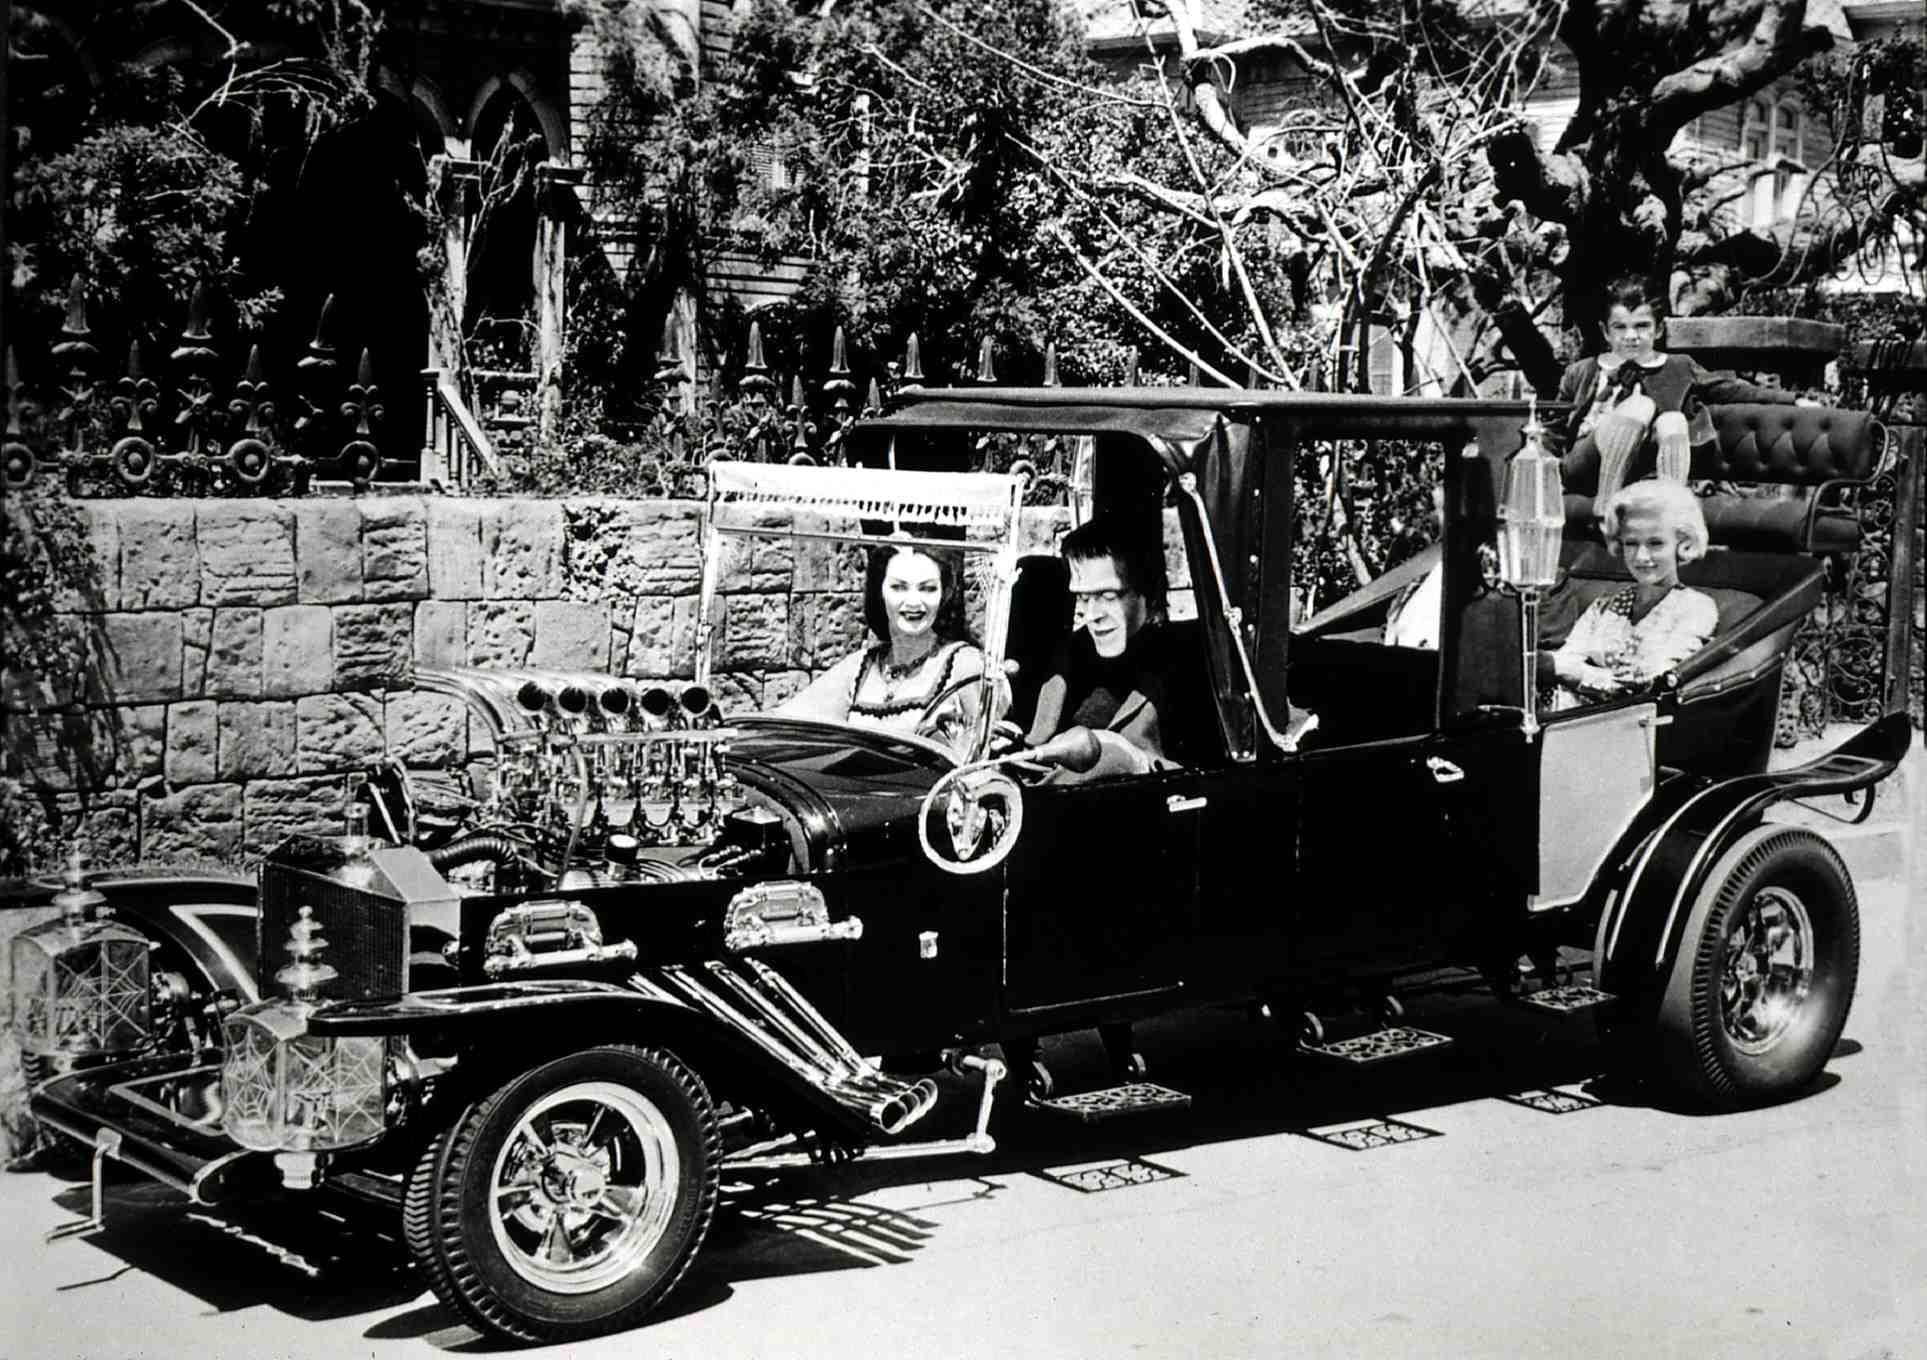 The Munsters Koach with (left to right) Yvonne de Carlo (Lily), Fred Gwynne (Herman), Butch Patrick (Eddie), and Beverly Owen (the original Marilyn) in 1964. FilmPublicityArchive/United Archives via Getty Images